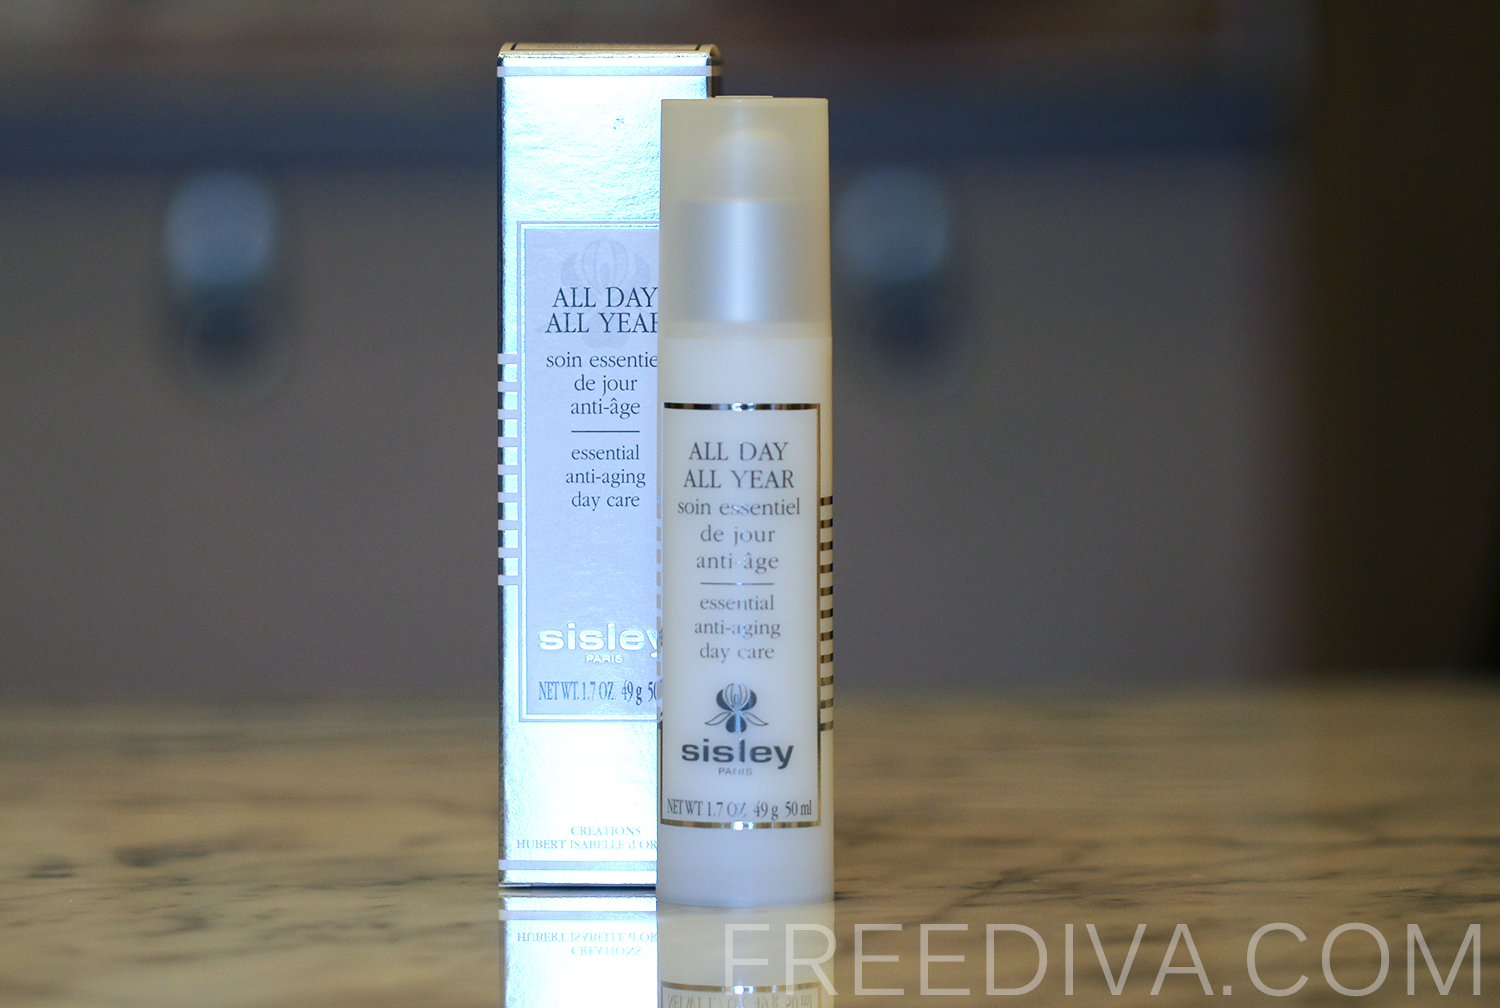 All Day All Year Cream, Sisley